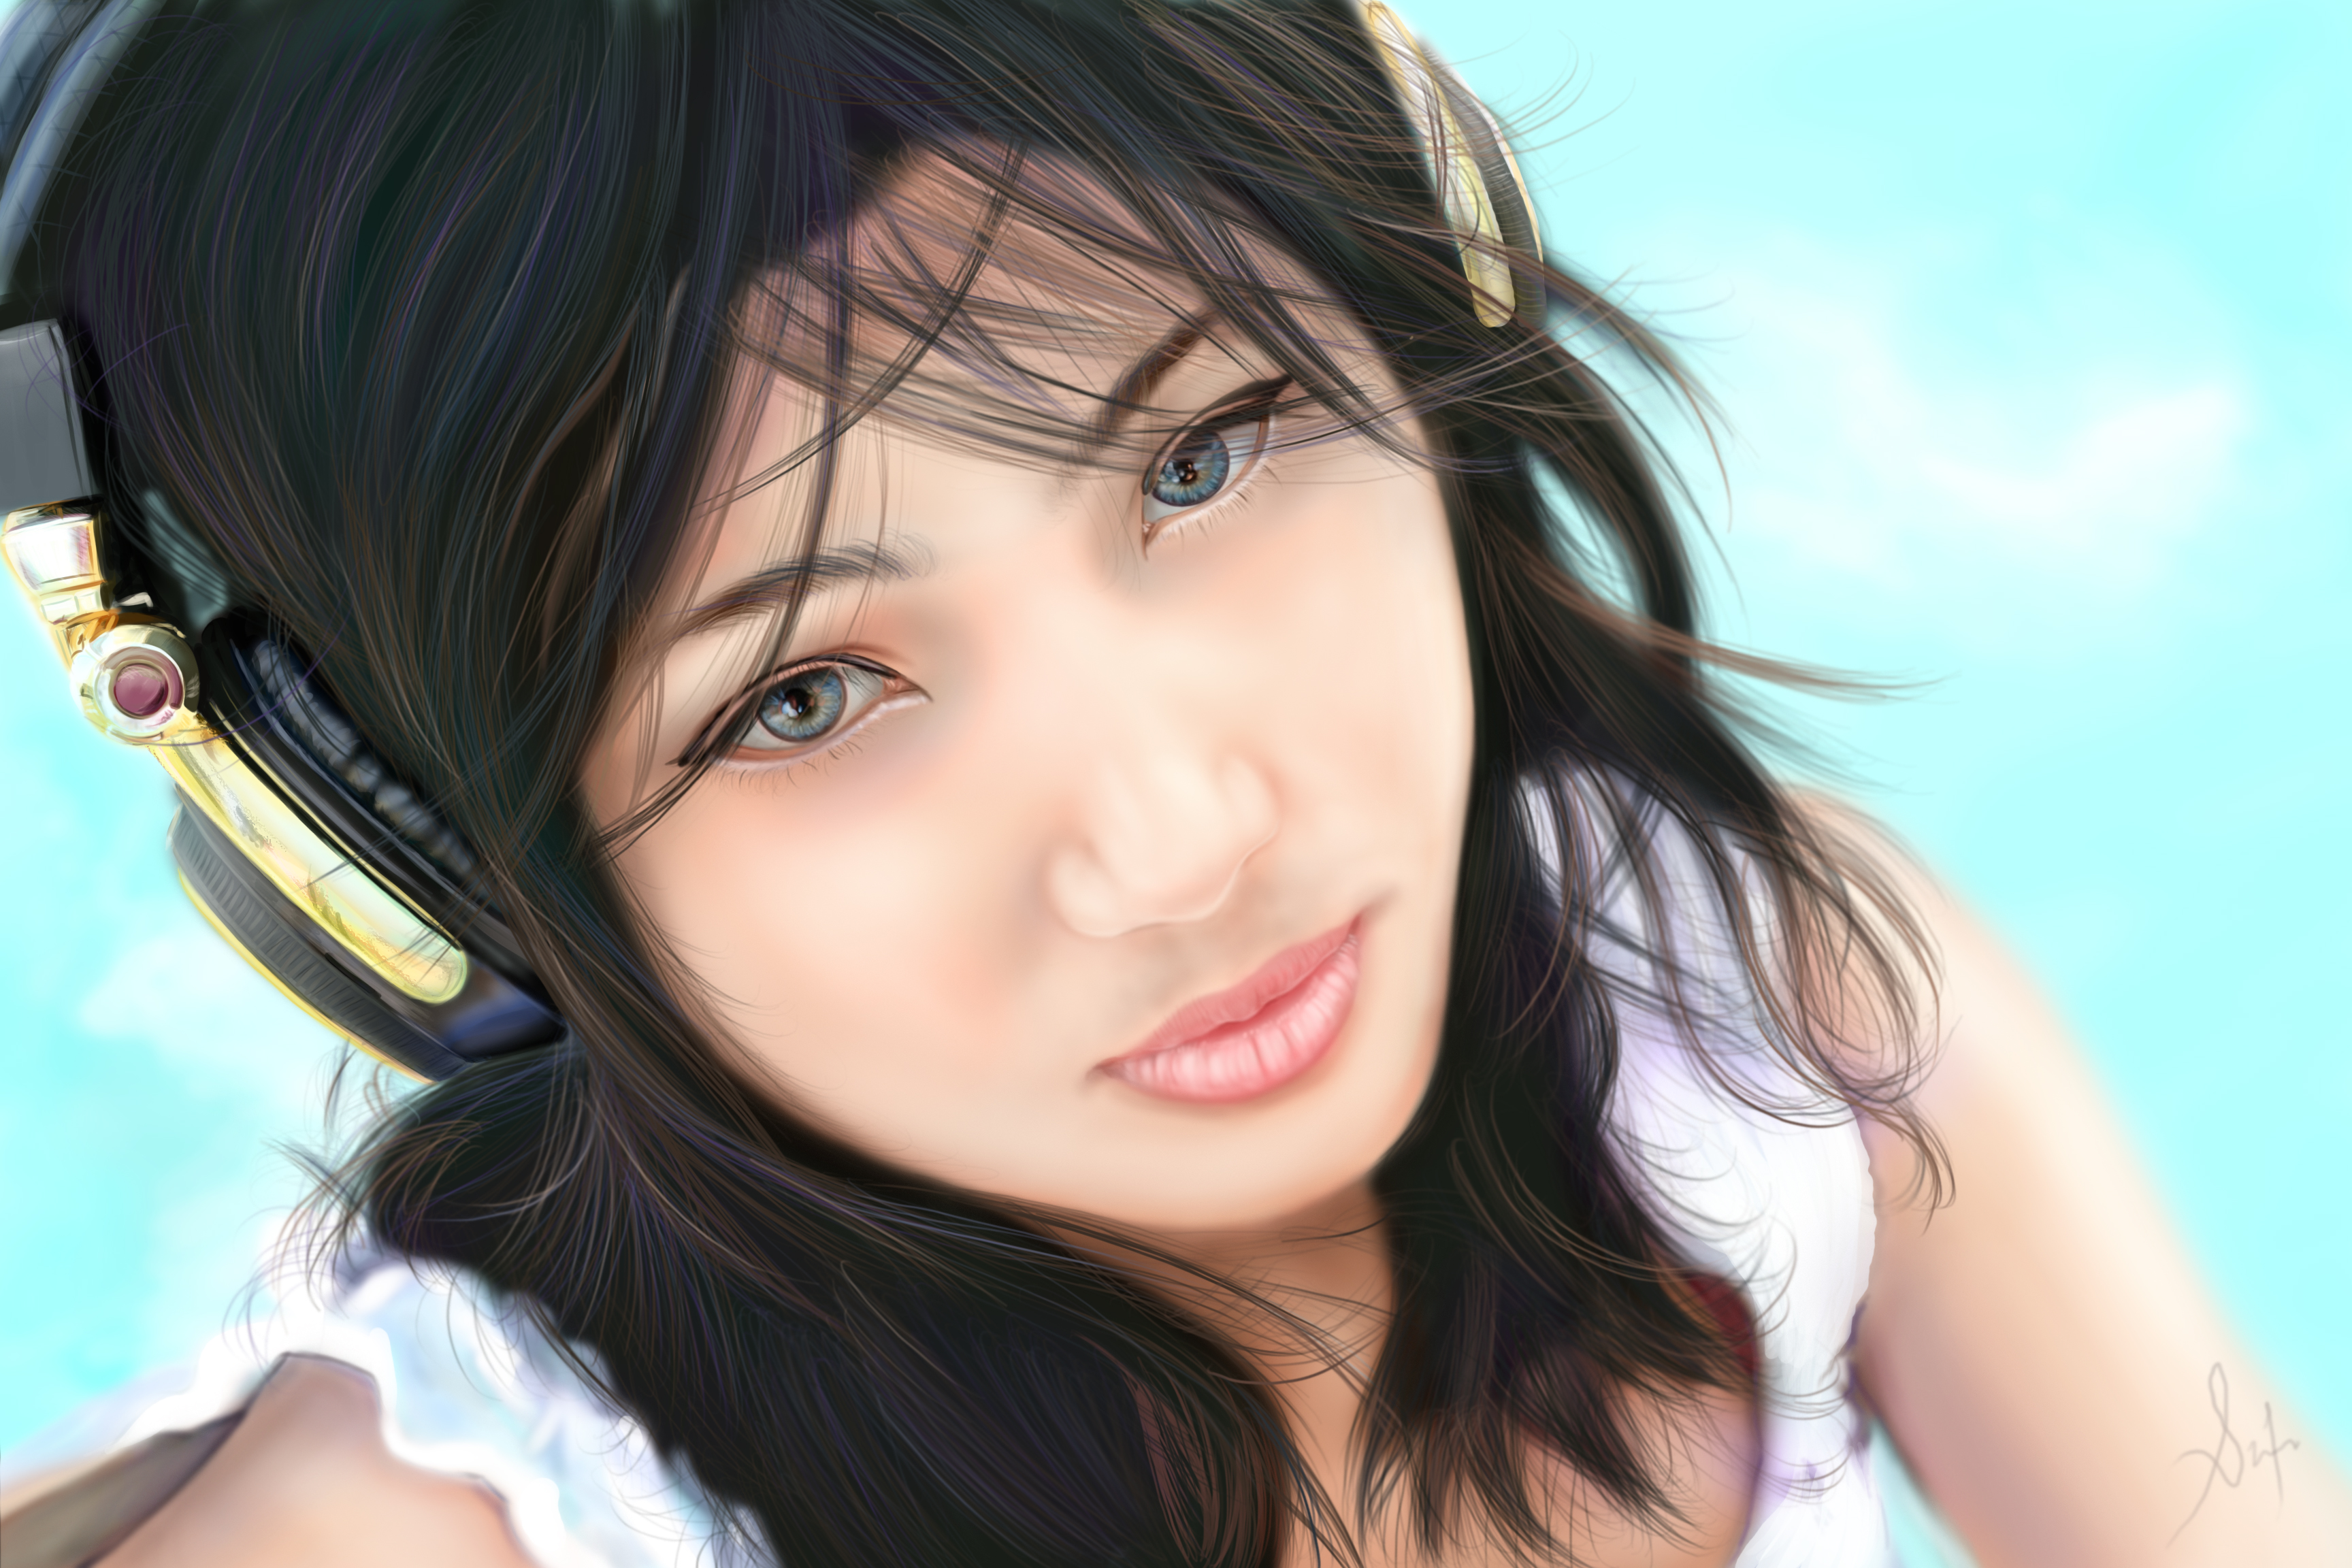 Japanese Girl by SidneiSimmon on DeviantArt